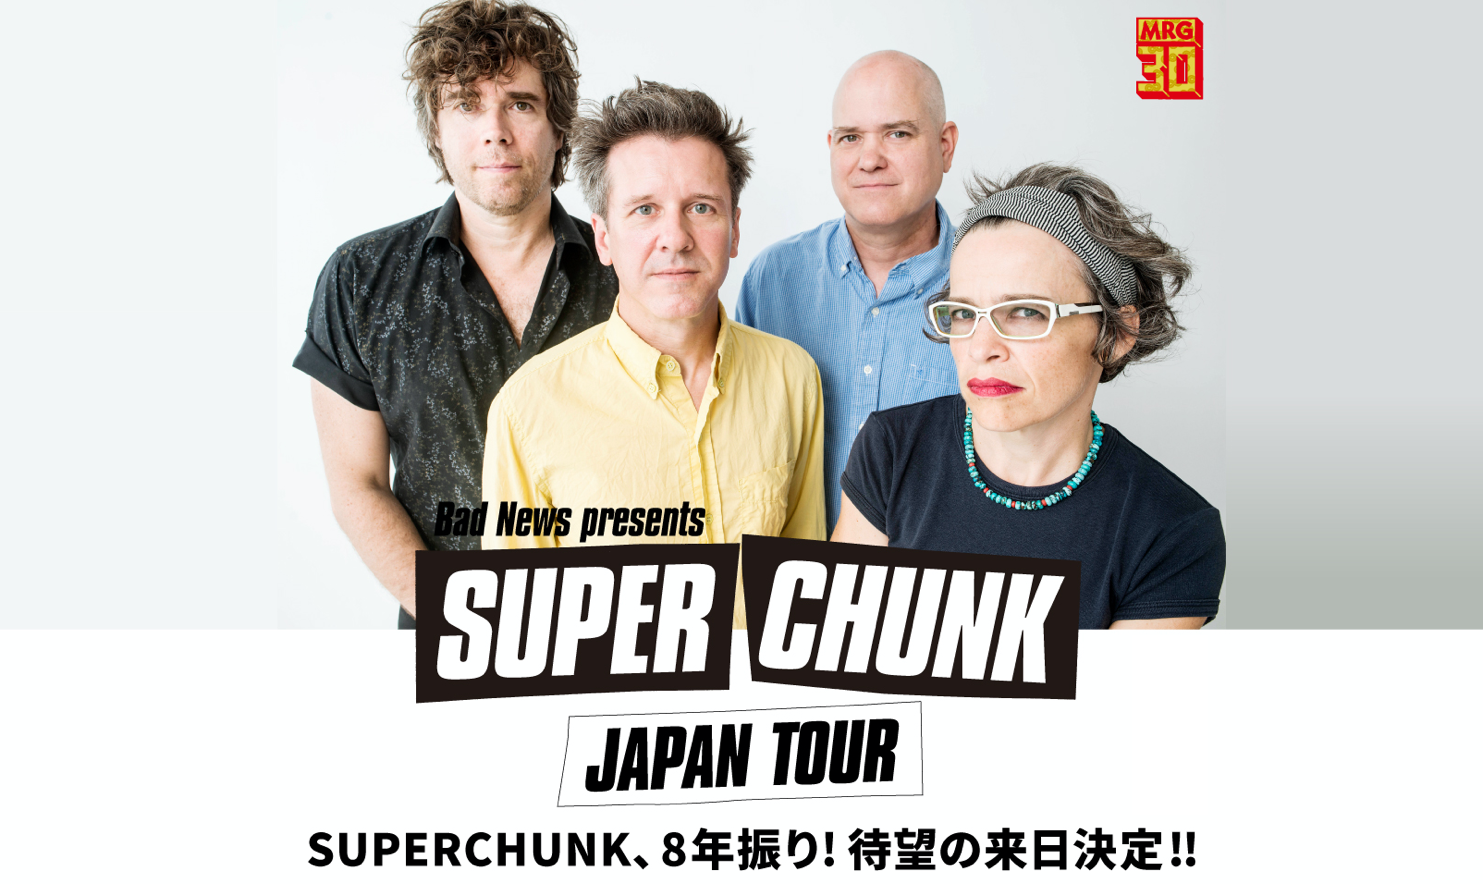 SUPERCHUNK JAPAN TOUR 2019